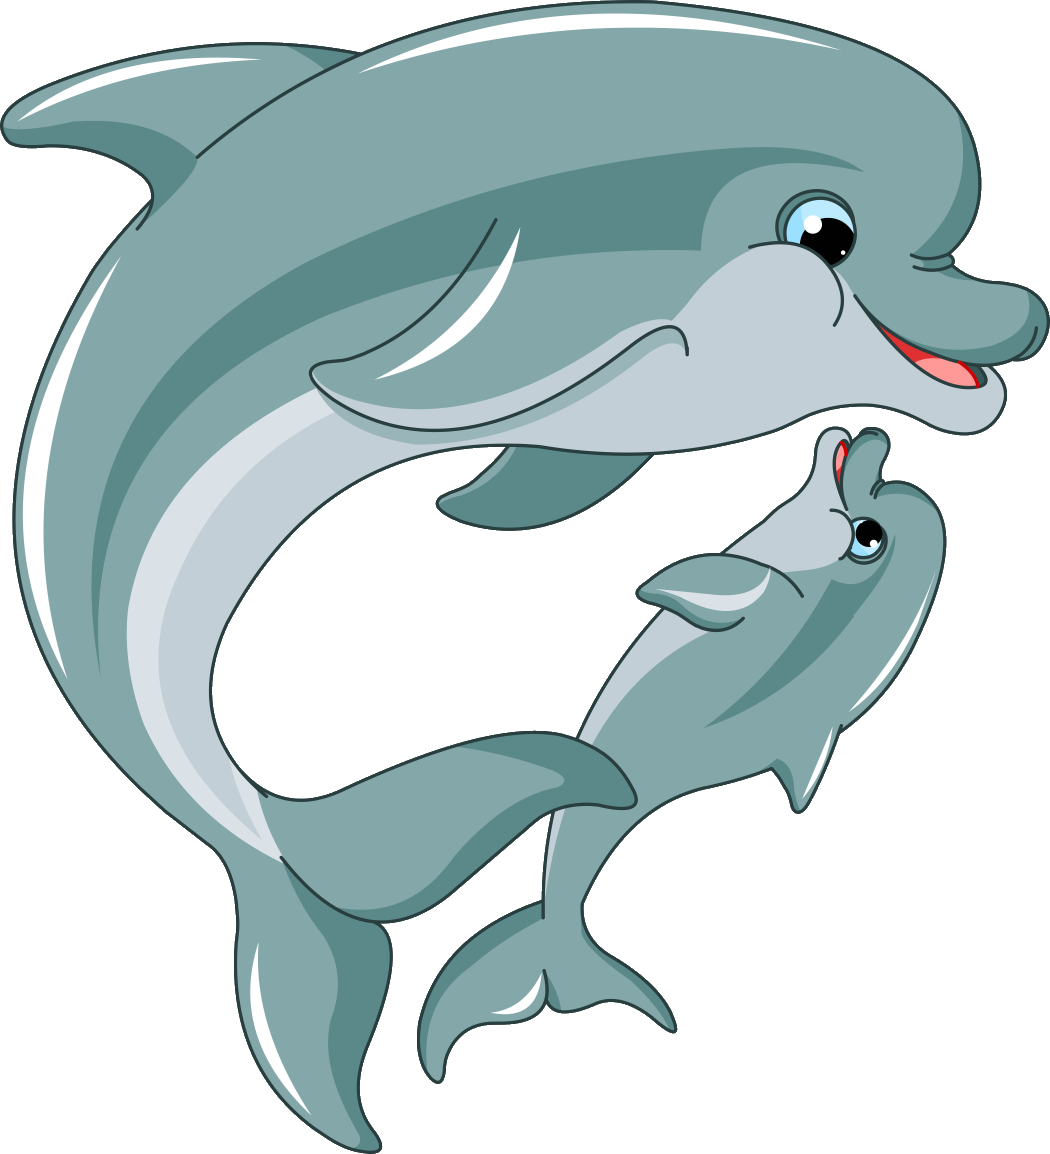 Dolphins clipart group dolphin. Cartoon backgrounds simple wallpaper